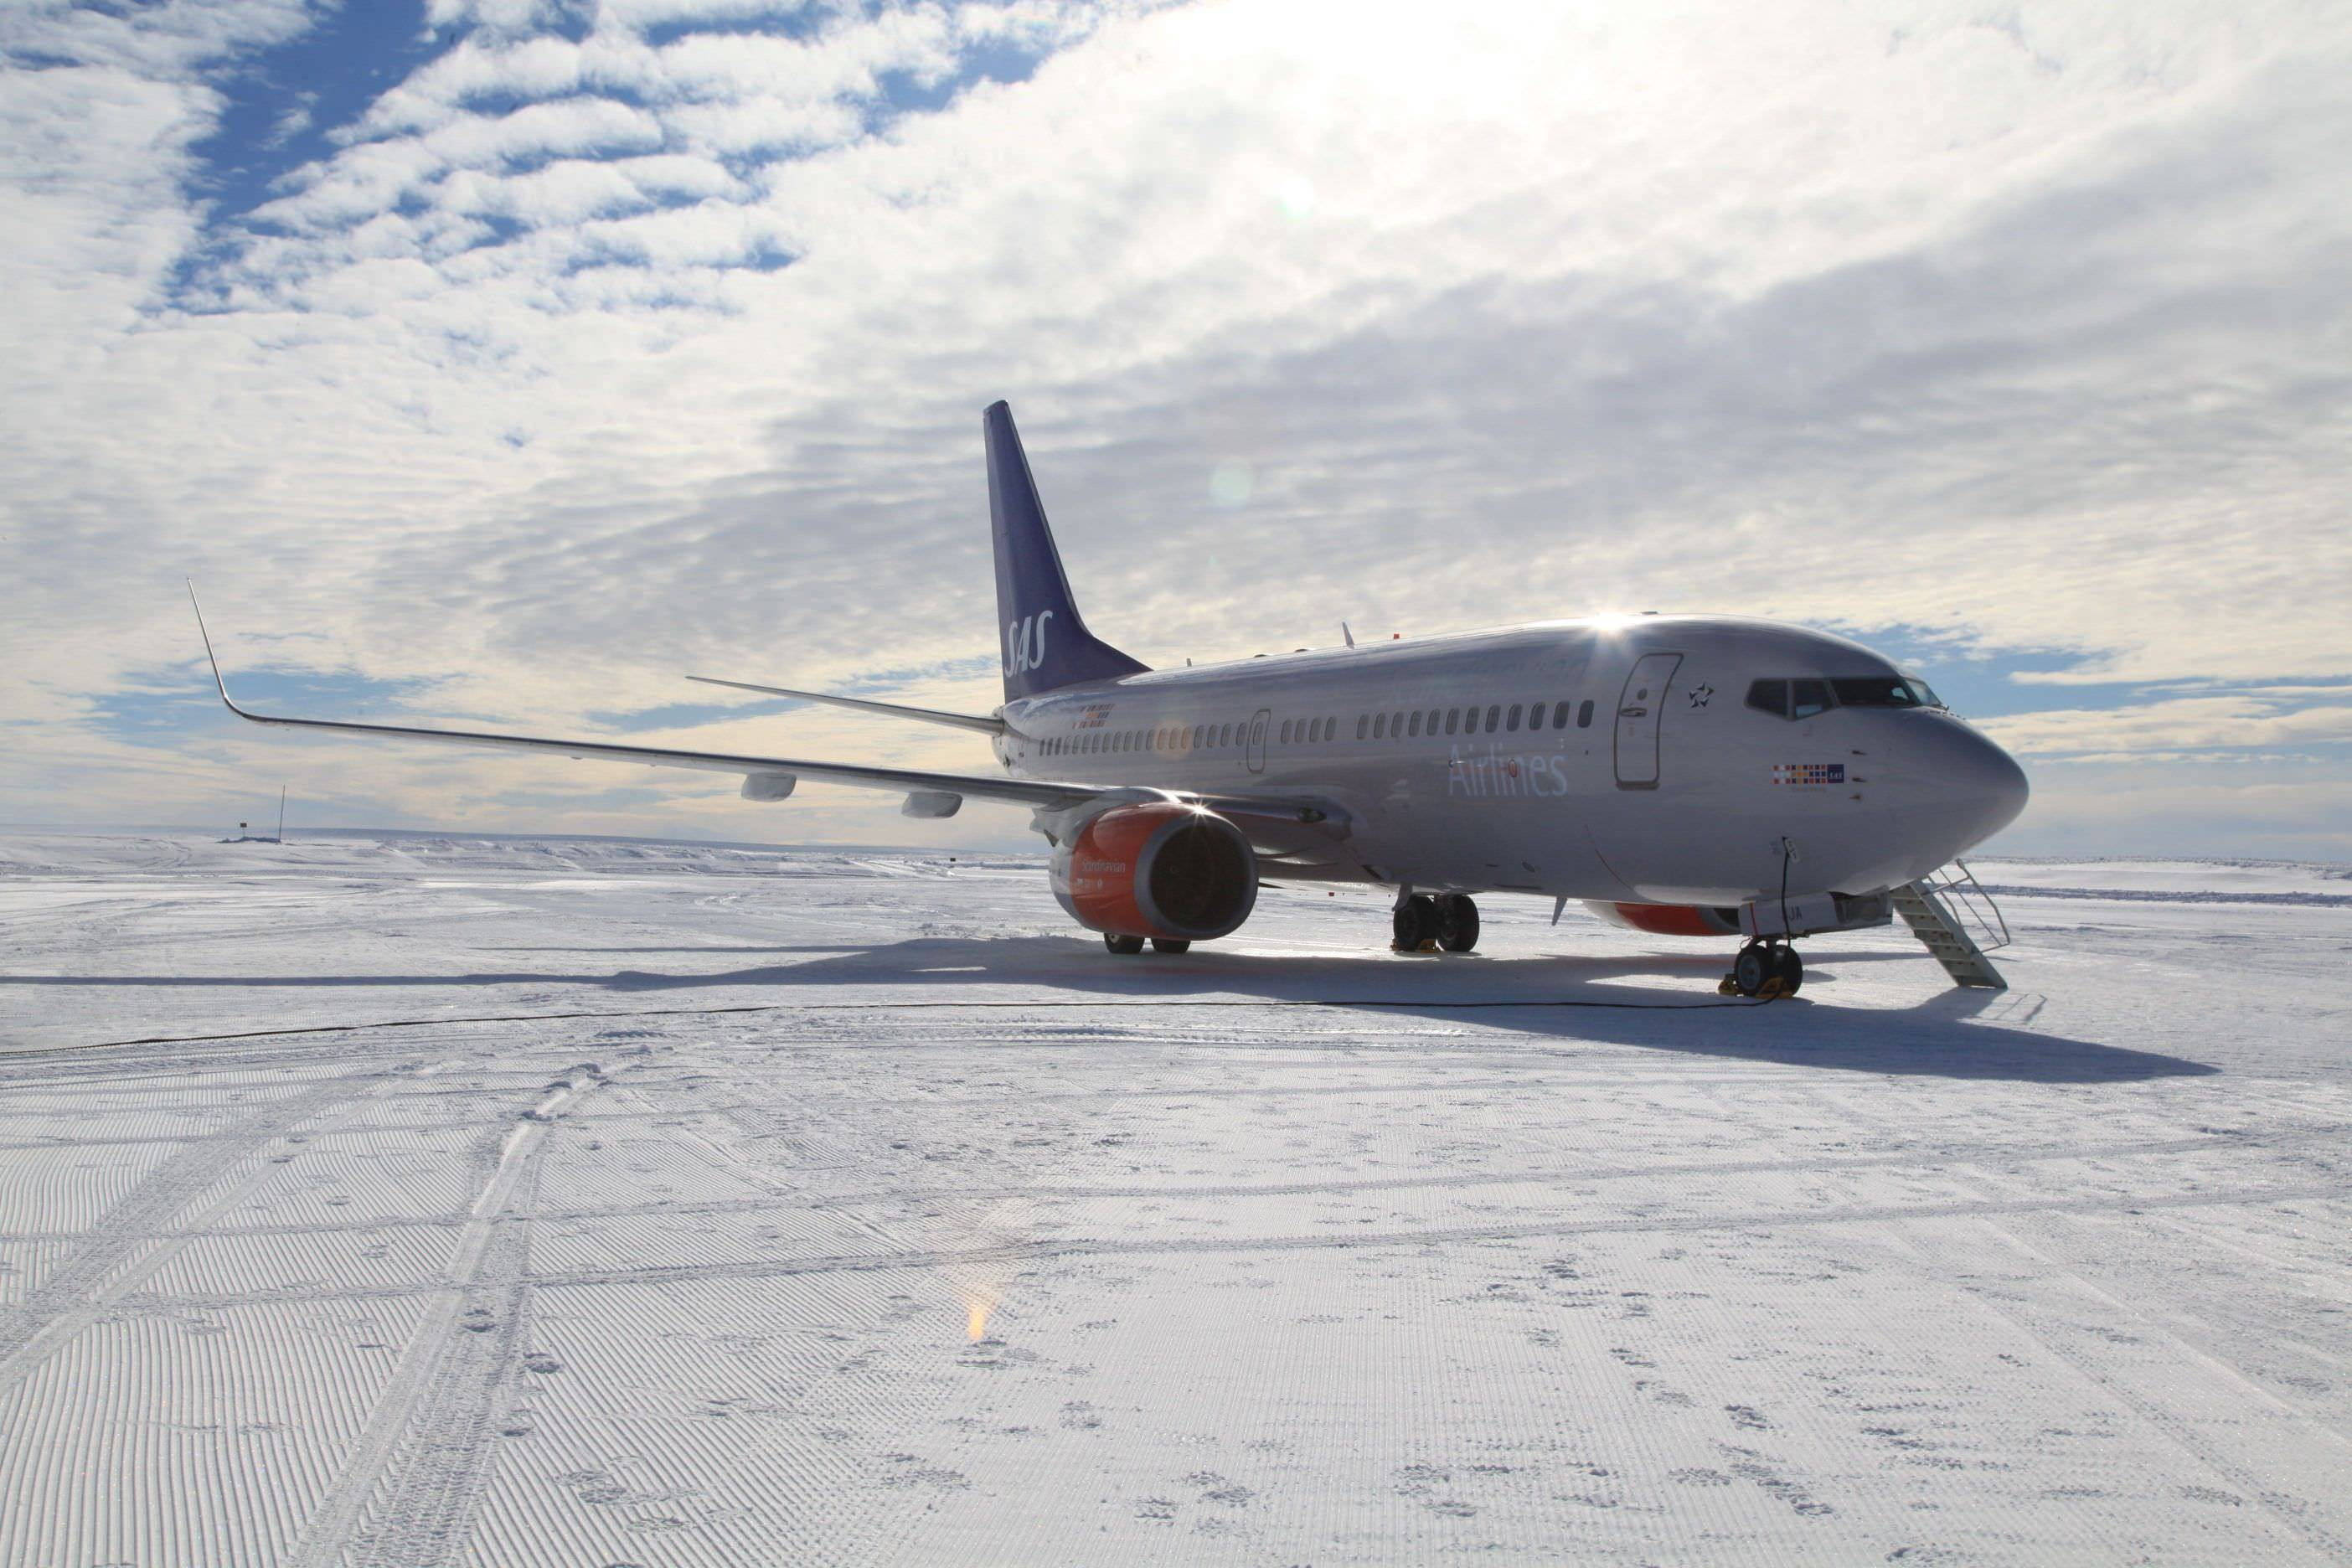 Privatair 737 in SAS livery at Troll Research Station in Antarctica